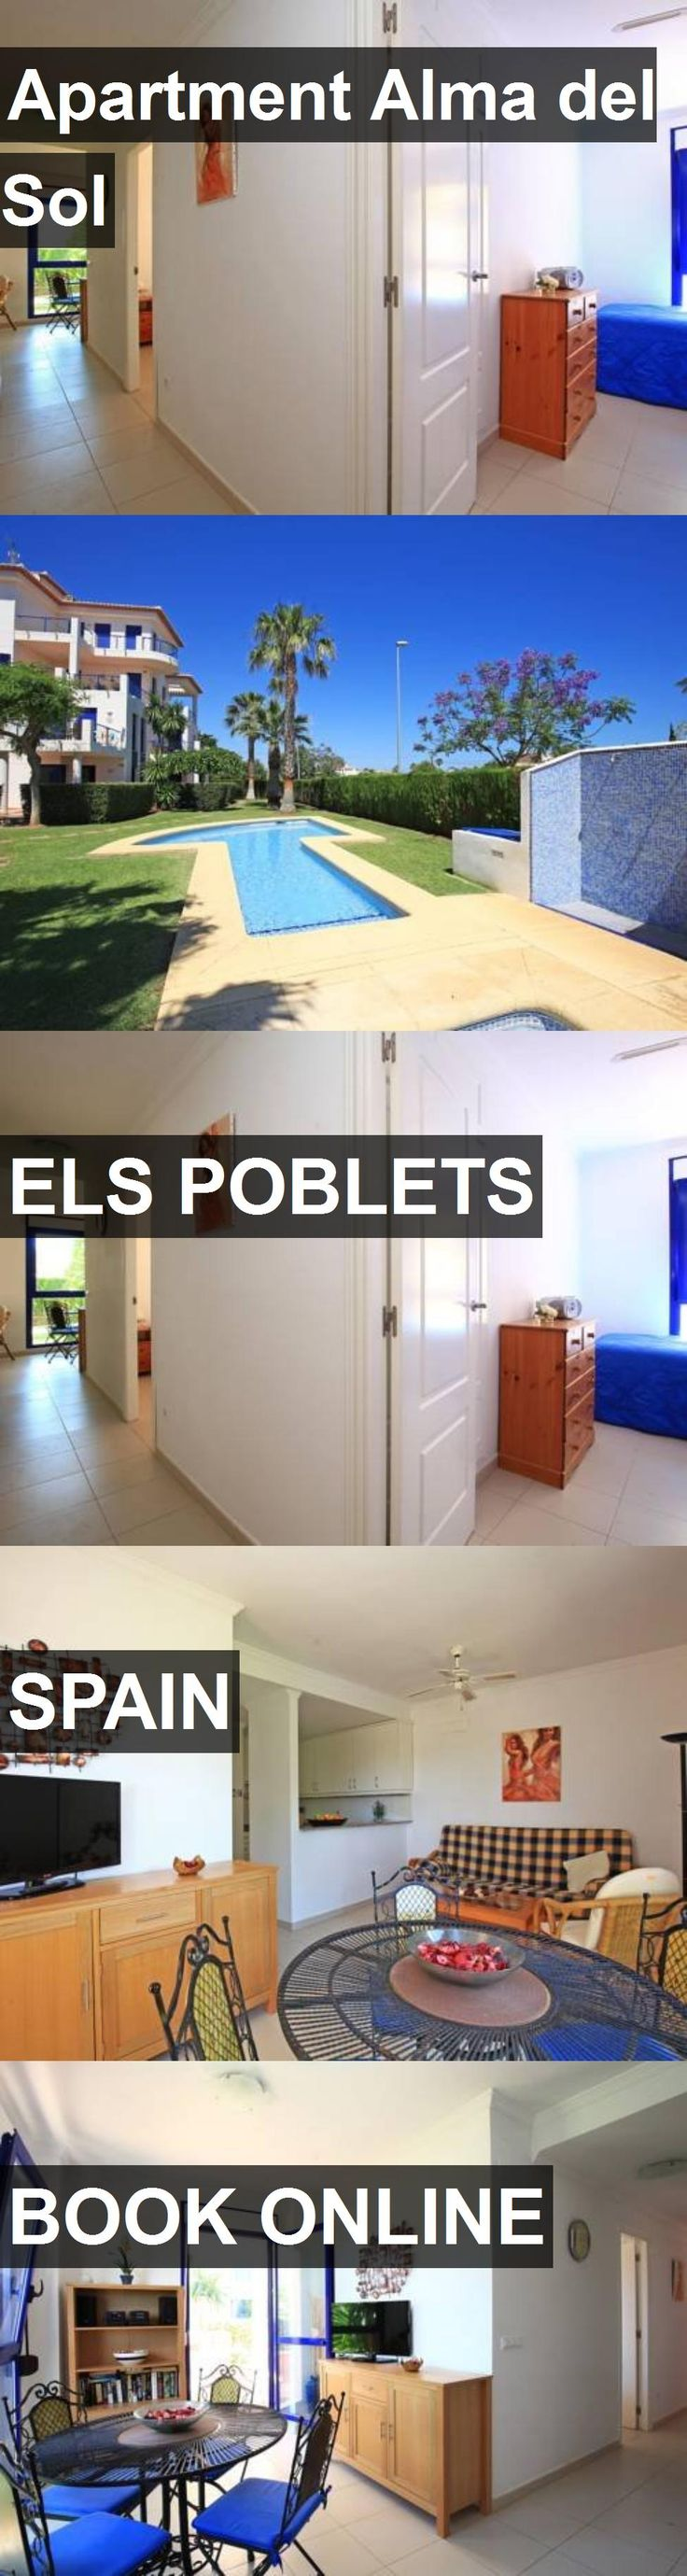 Hotel Apartment Alma del Sol in Els Poblets, Spain. For more information, photos, reviews and best prices please follow the link. #Spain #ElsPoblets #hotel #travel #vacation